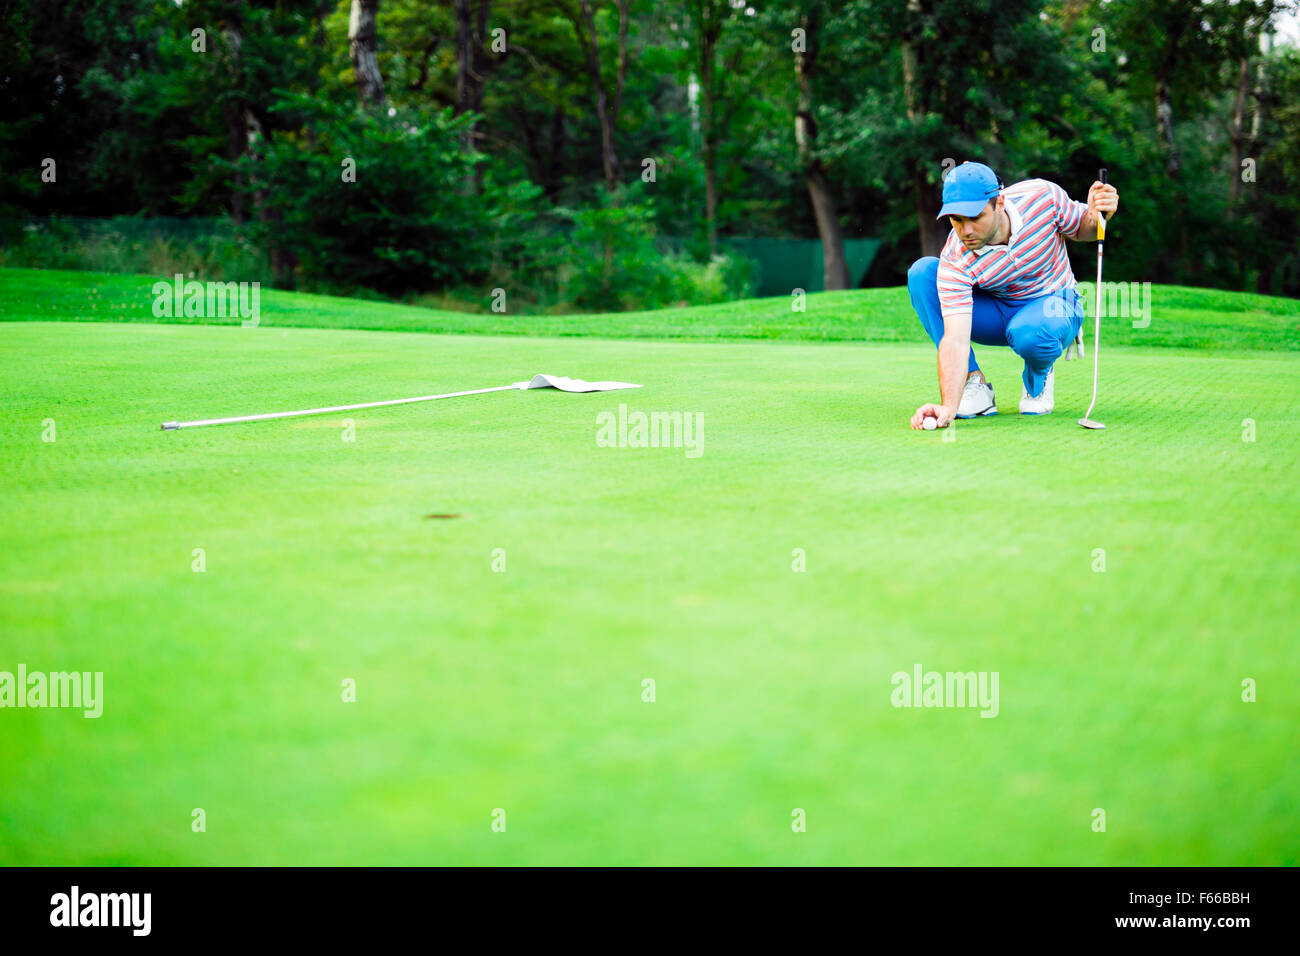 Golf player marking ball on the putting green before lifting the ball - Stock Image